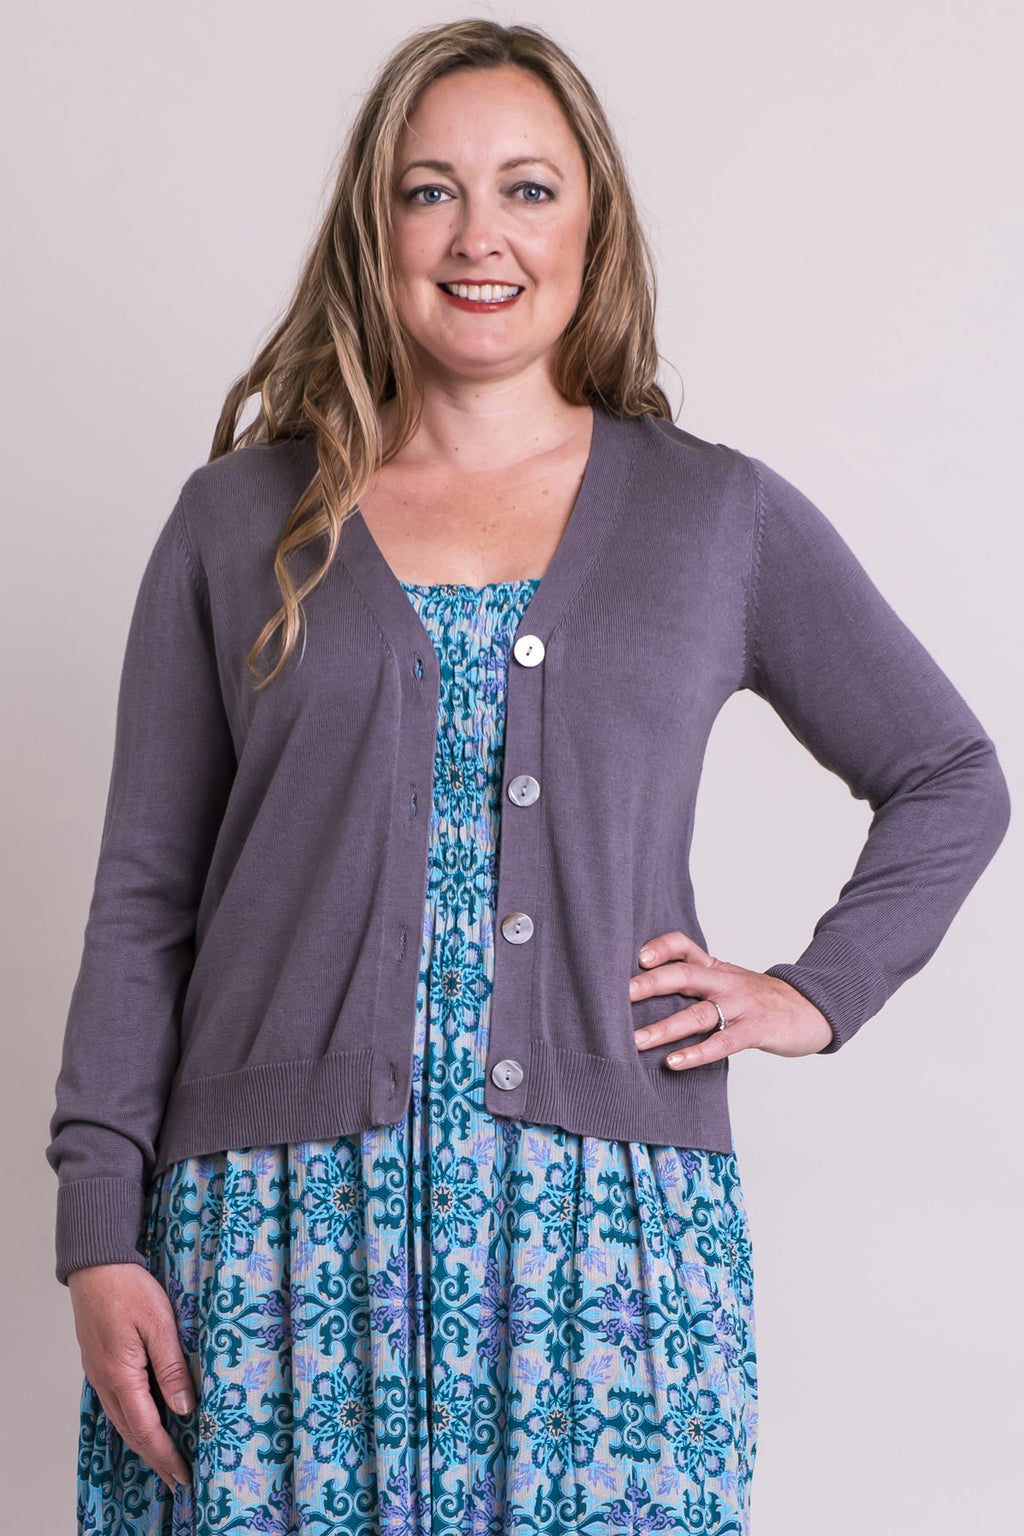 Jessica Sweater, Ash Grey , Bamboo Cotton - Blue Sky Clothing Co